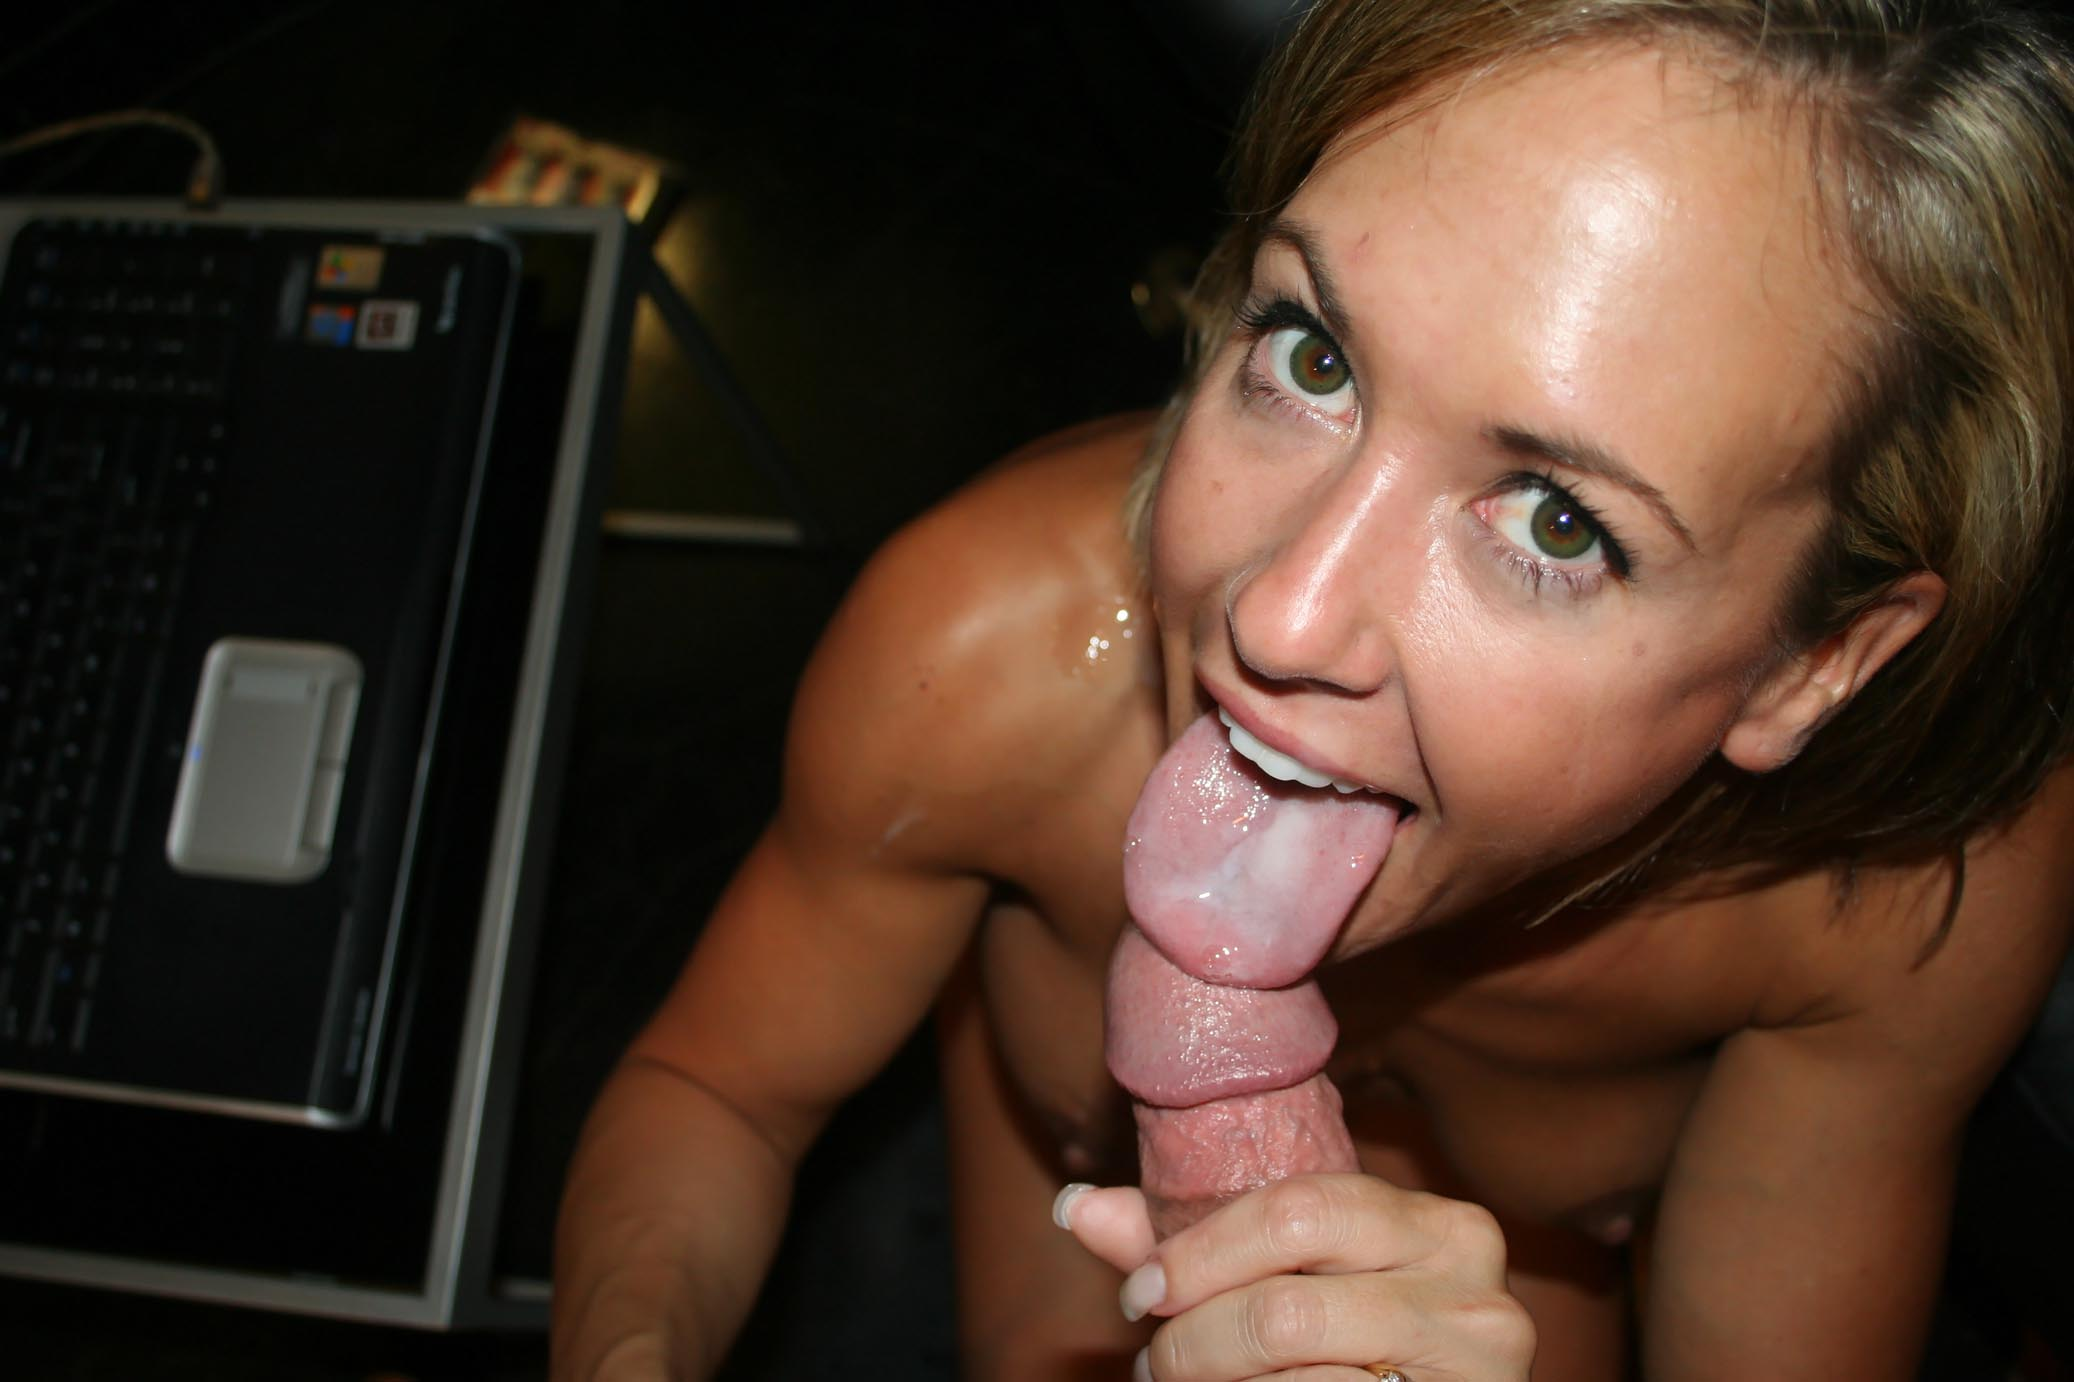 Plump deepthroat video